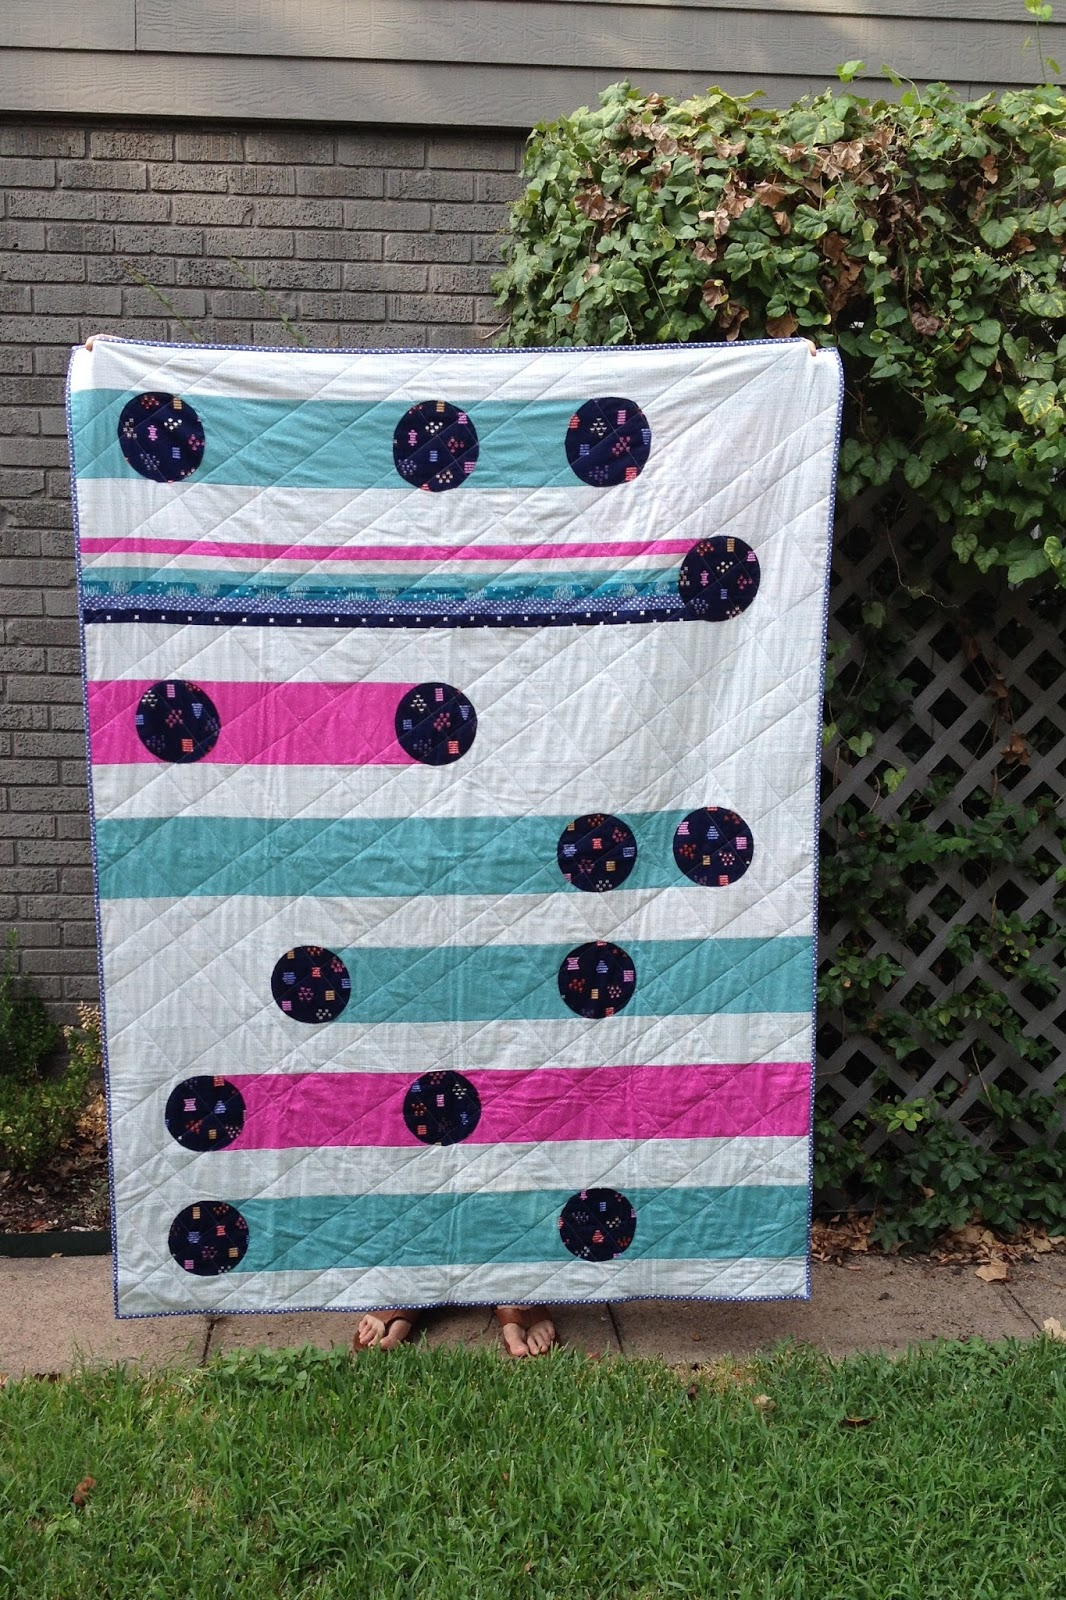 http://ablueskykindoflife.blogspot.com/2015/09/lucky-strikes-quilt-finish.html